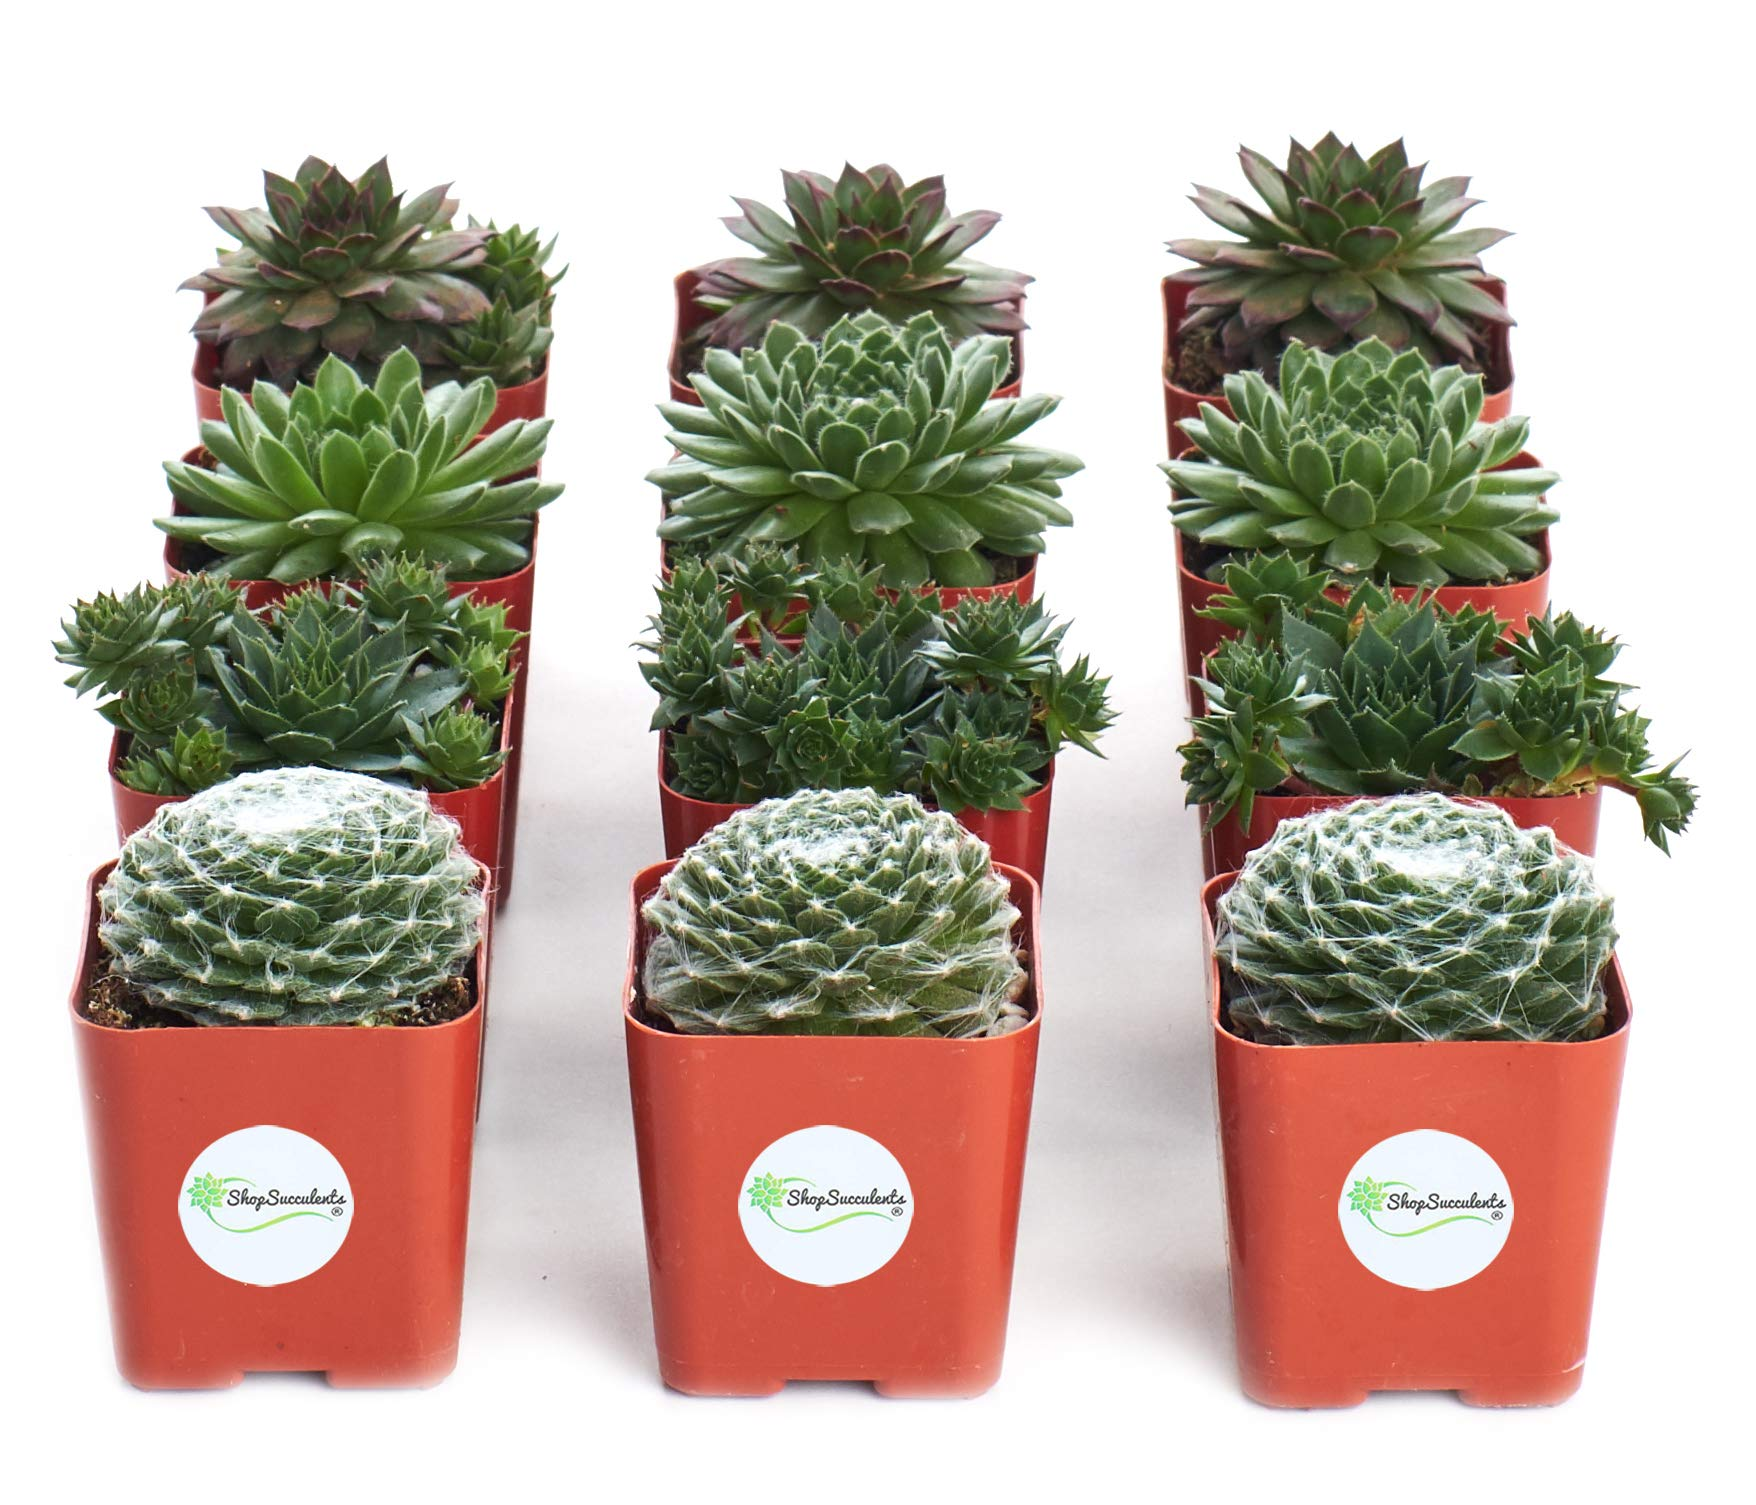 Shop Succulents | Sempervivum Hen and Chick, Hand Selected Variety Pack of Live Succulents | | Collection of 12 in 2'' pots, 12, Green